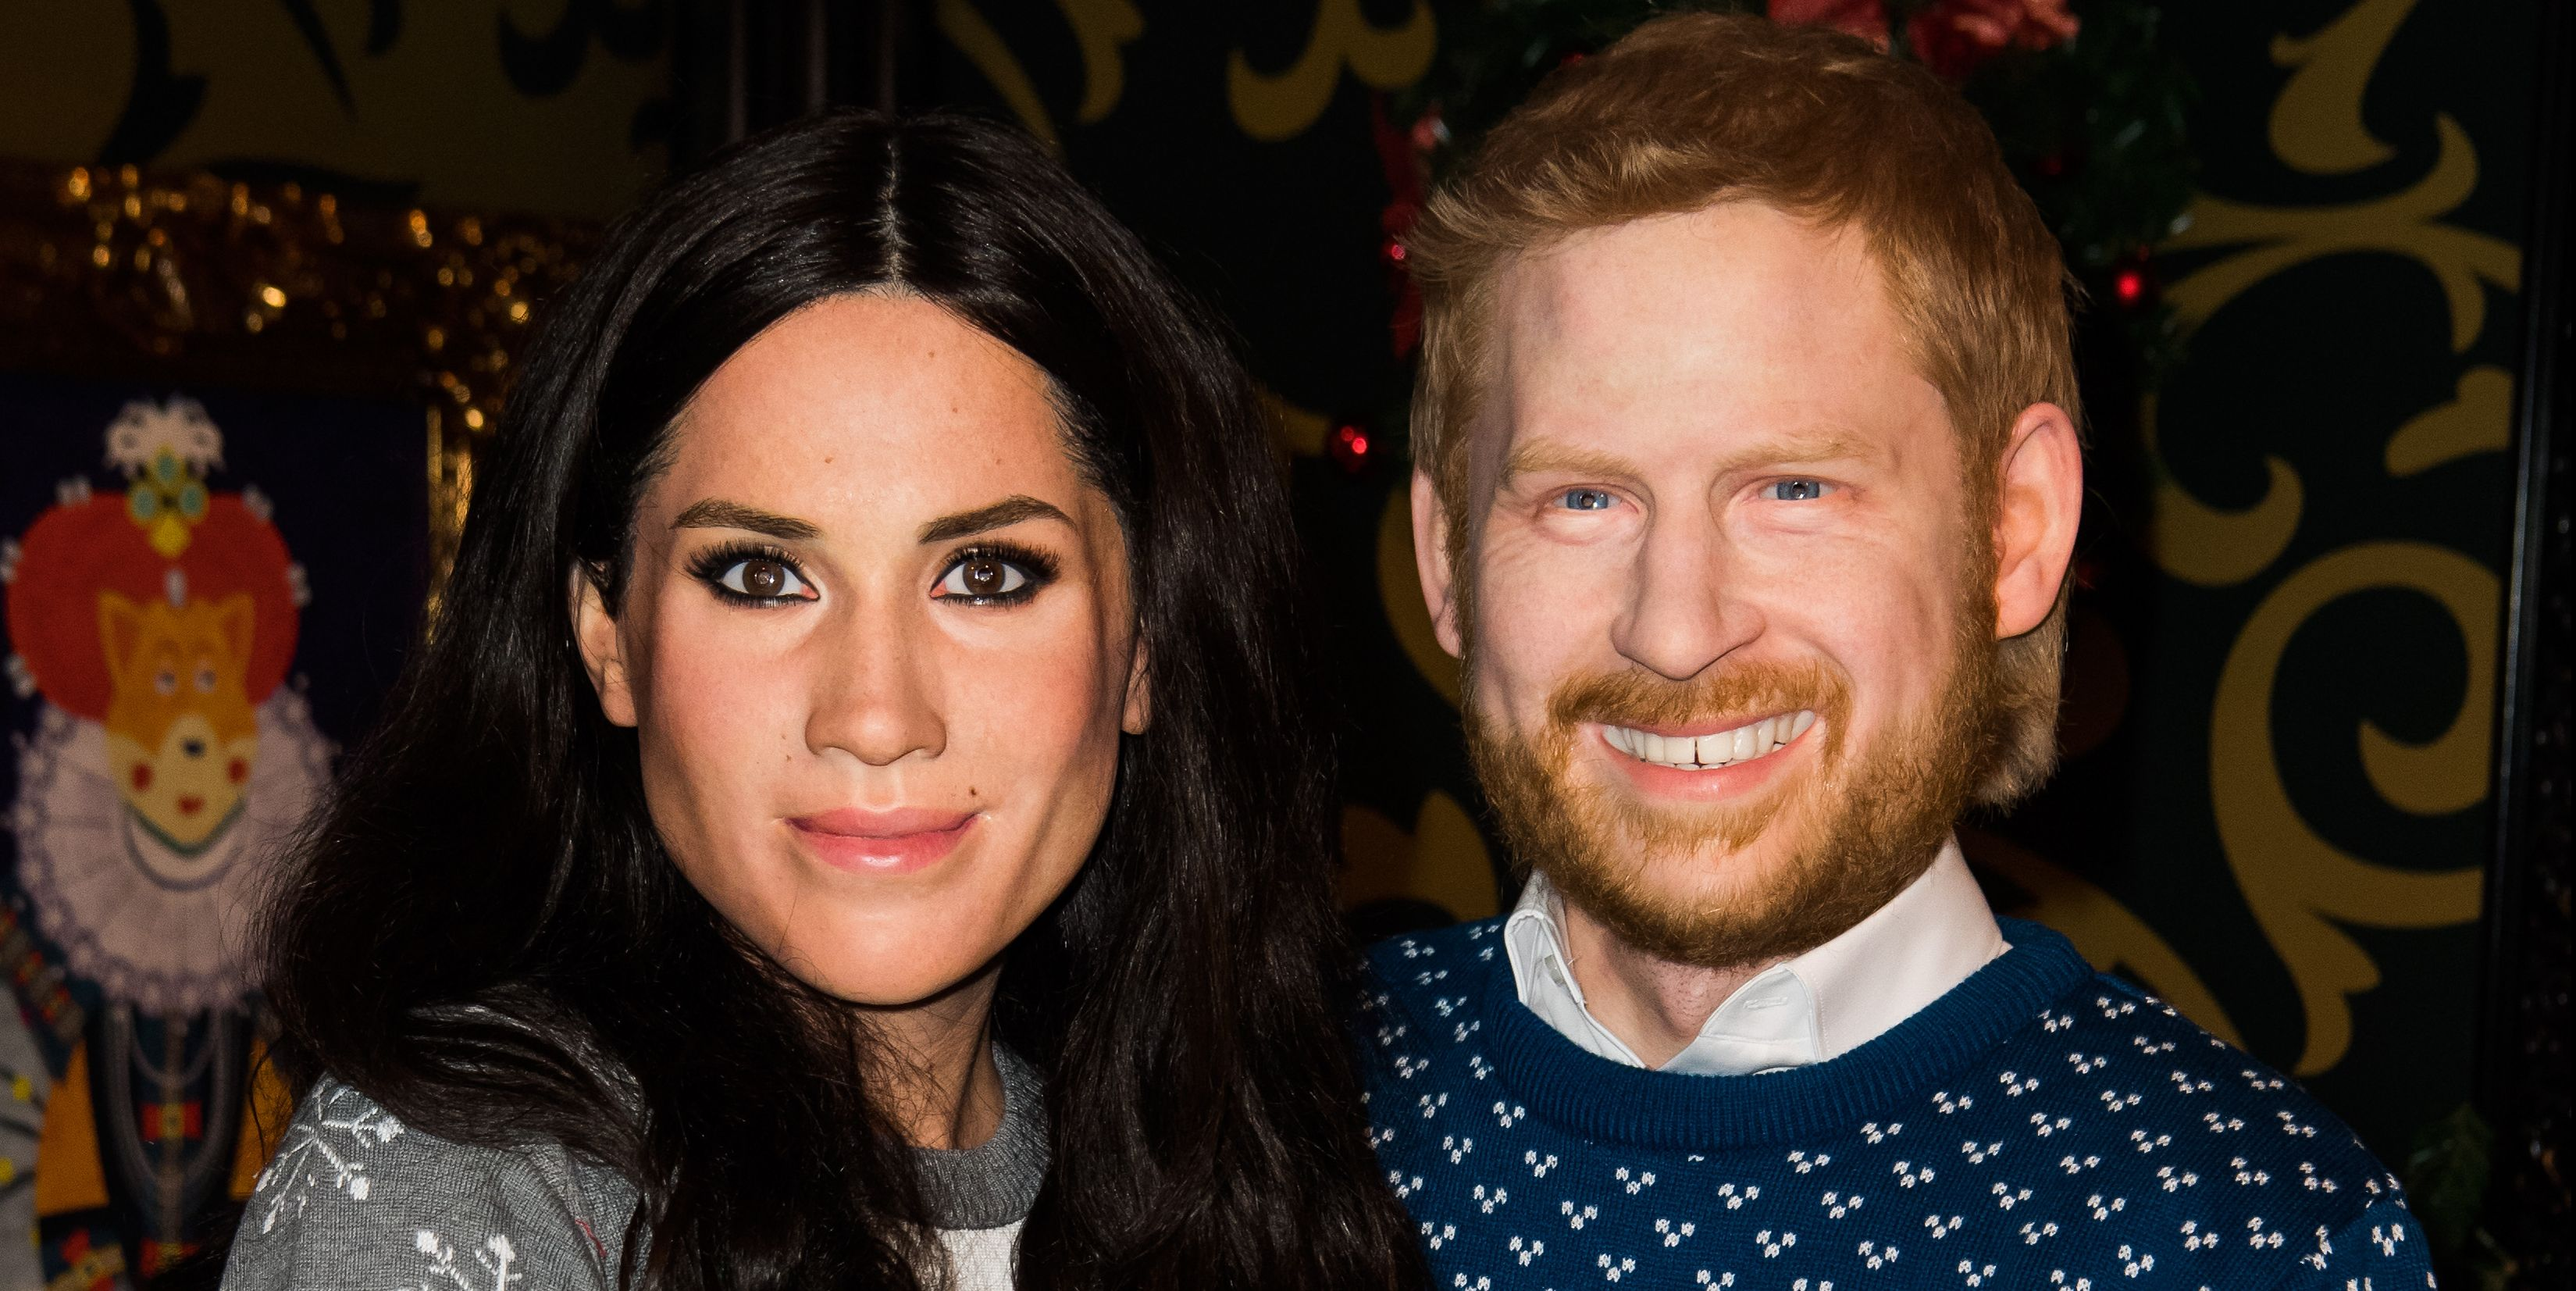 Meghan Markle And Prince Harry Transformed Into 'Live' Waxworks And They're So Bad It's Good